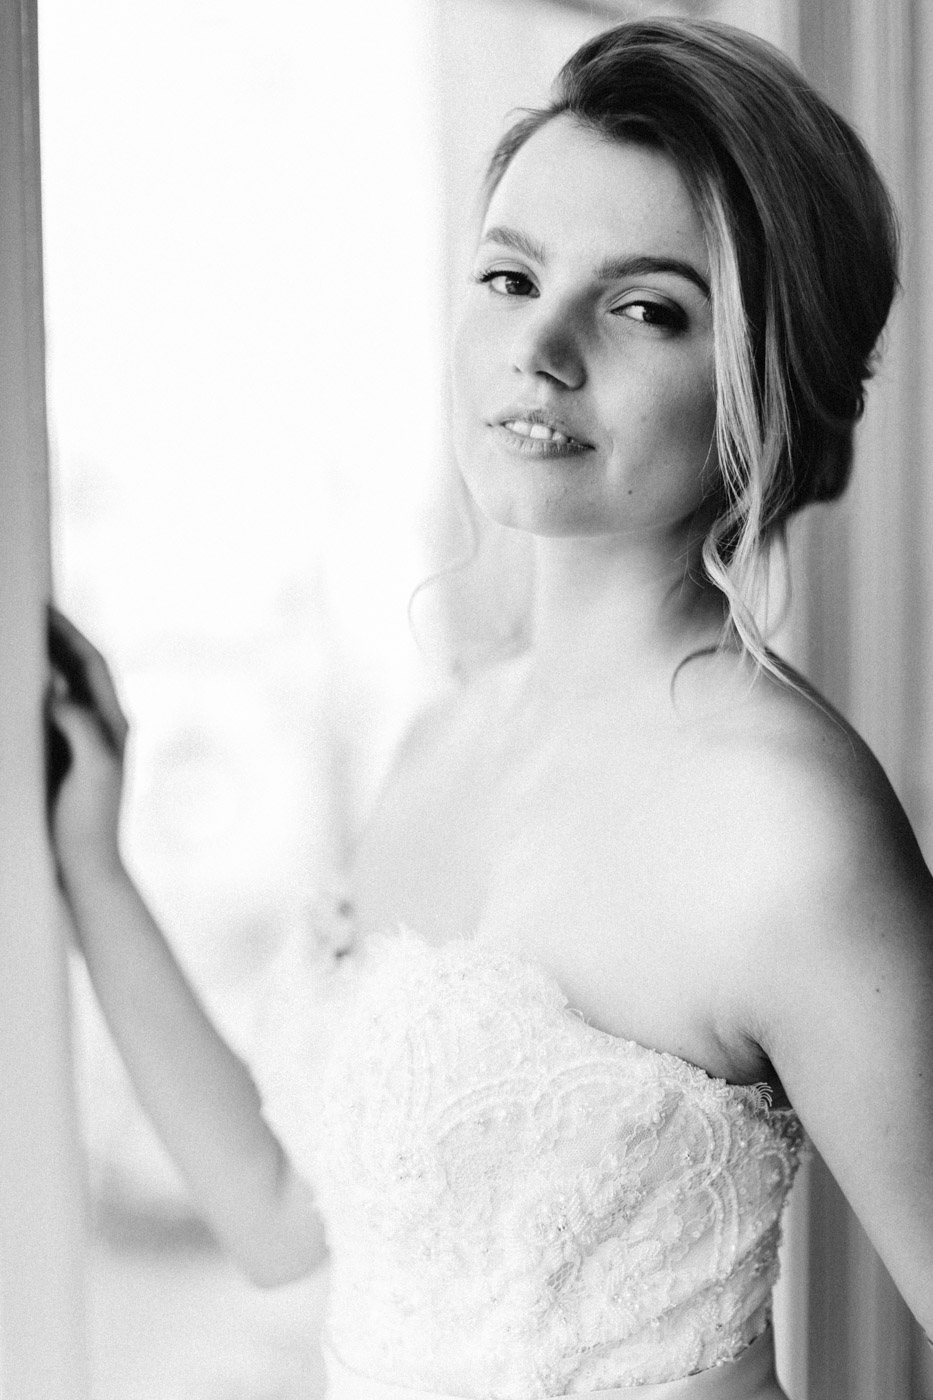 the_great_hall_wedding_photos 2017-170.jpg